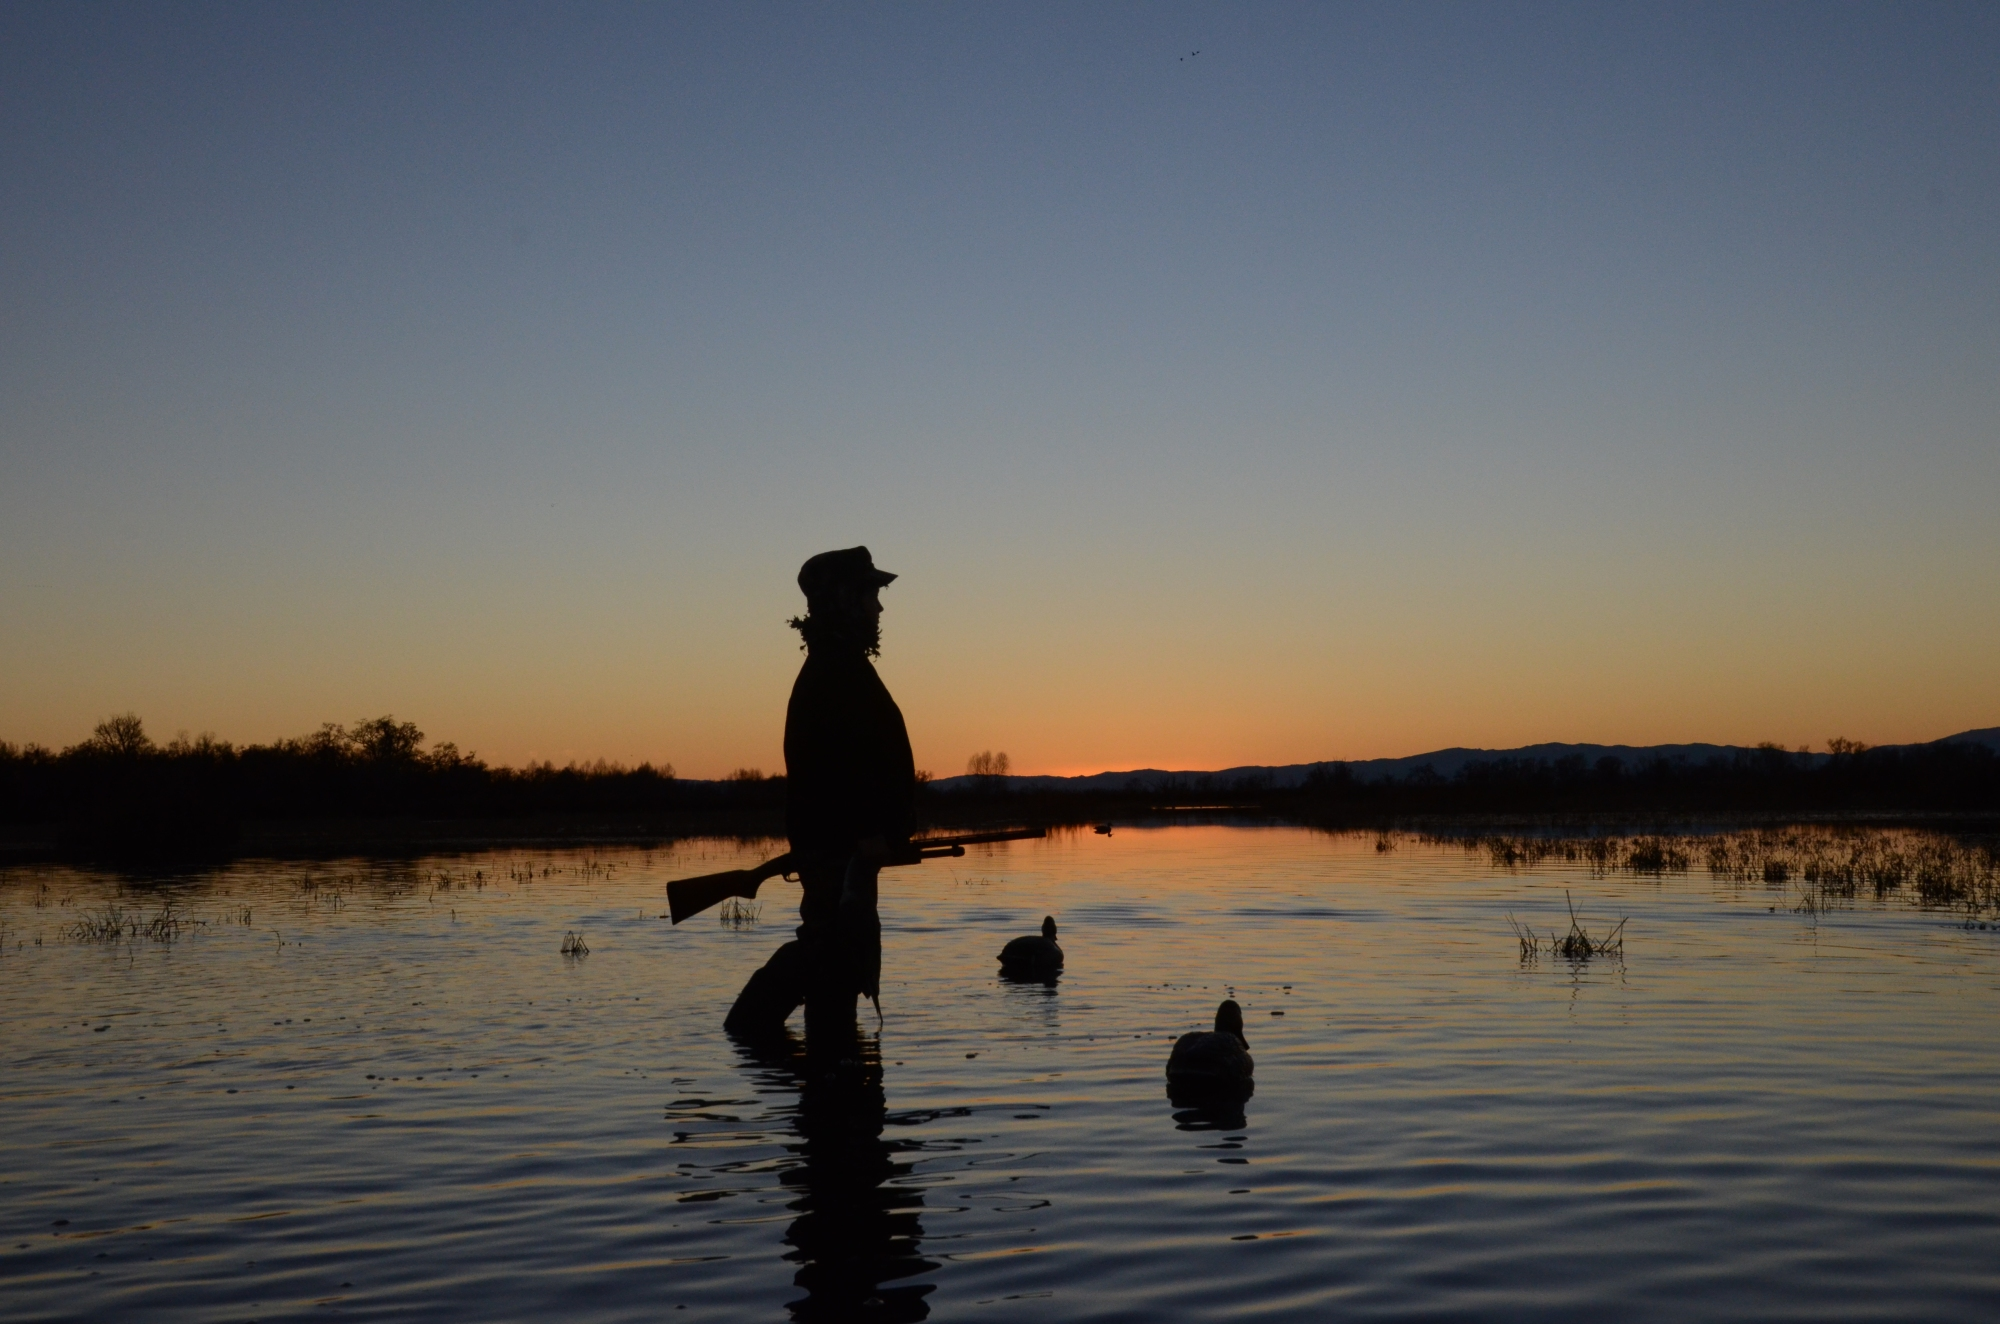 Boy with decoys at sunrise